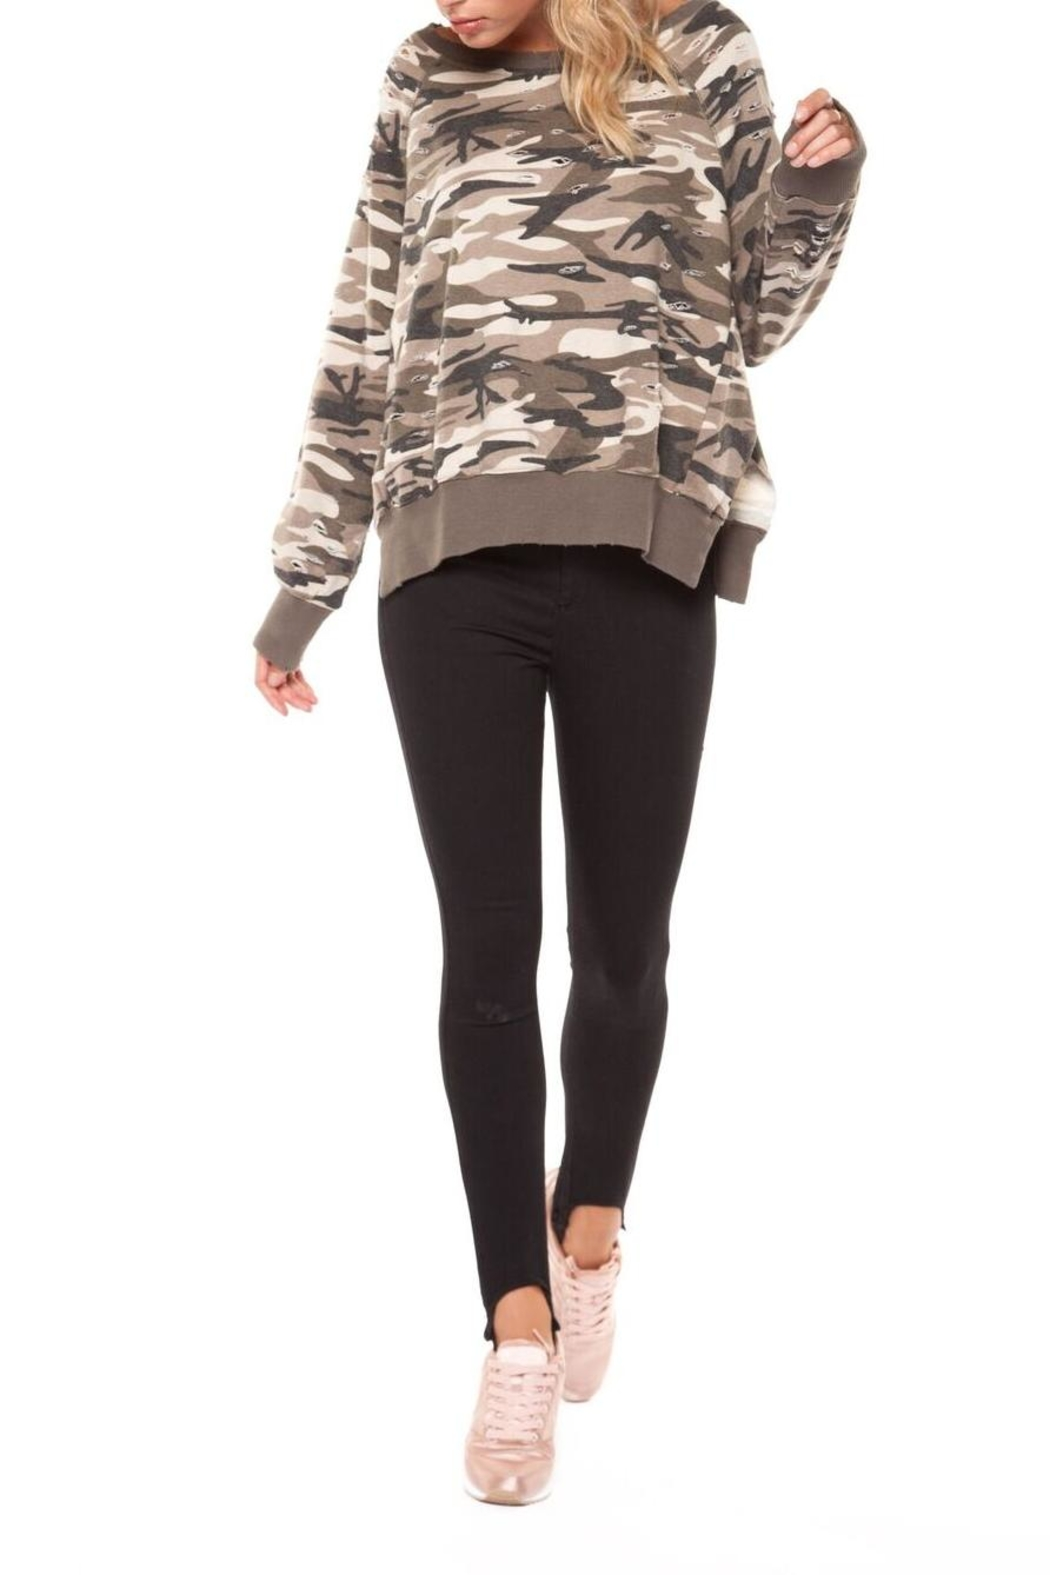 new style d0b57 ff15a Dex Camo Sweatshirt from Calgary by Seven Saints — Shoptiques